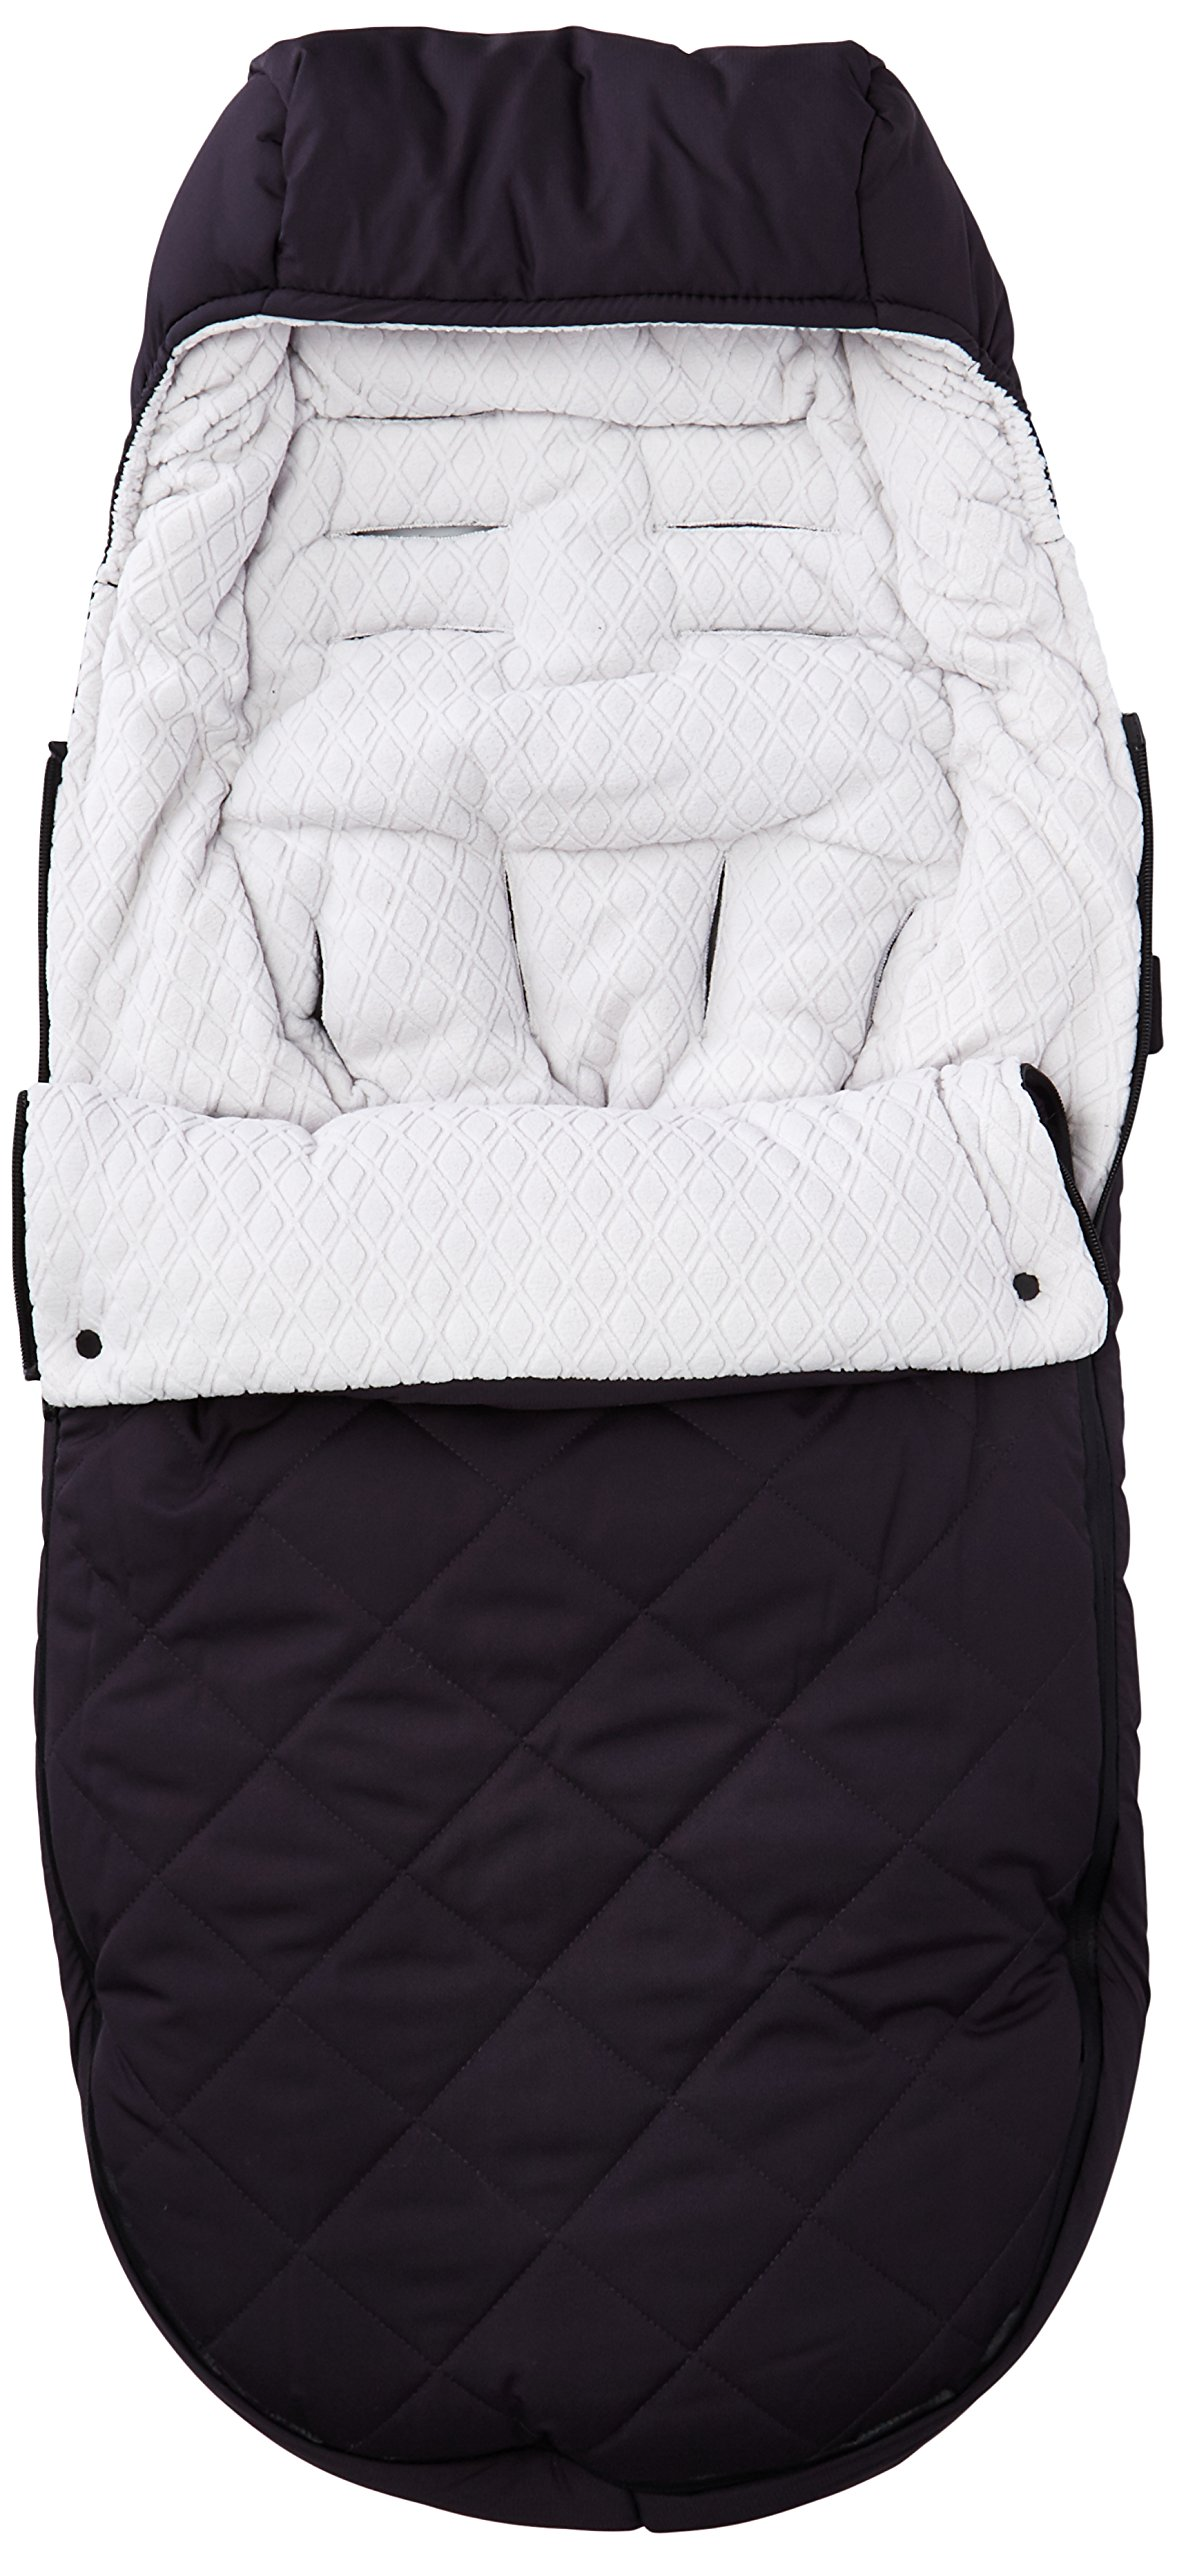 UPPAbaby CozyGanoosh Footmuff, Jake (Black)